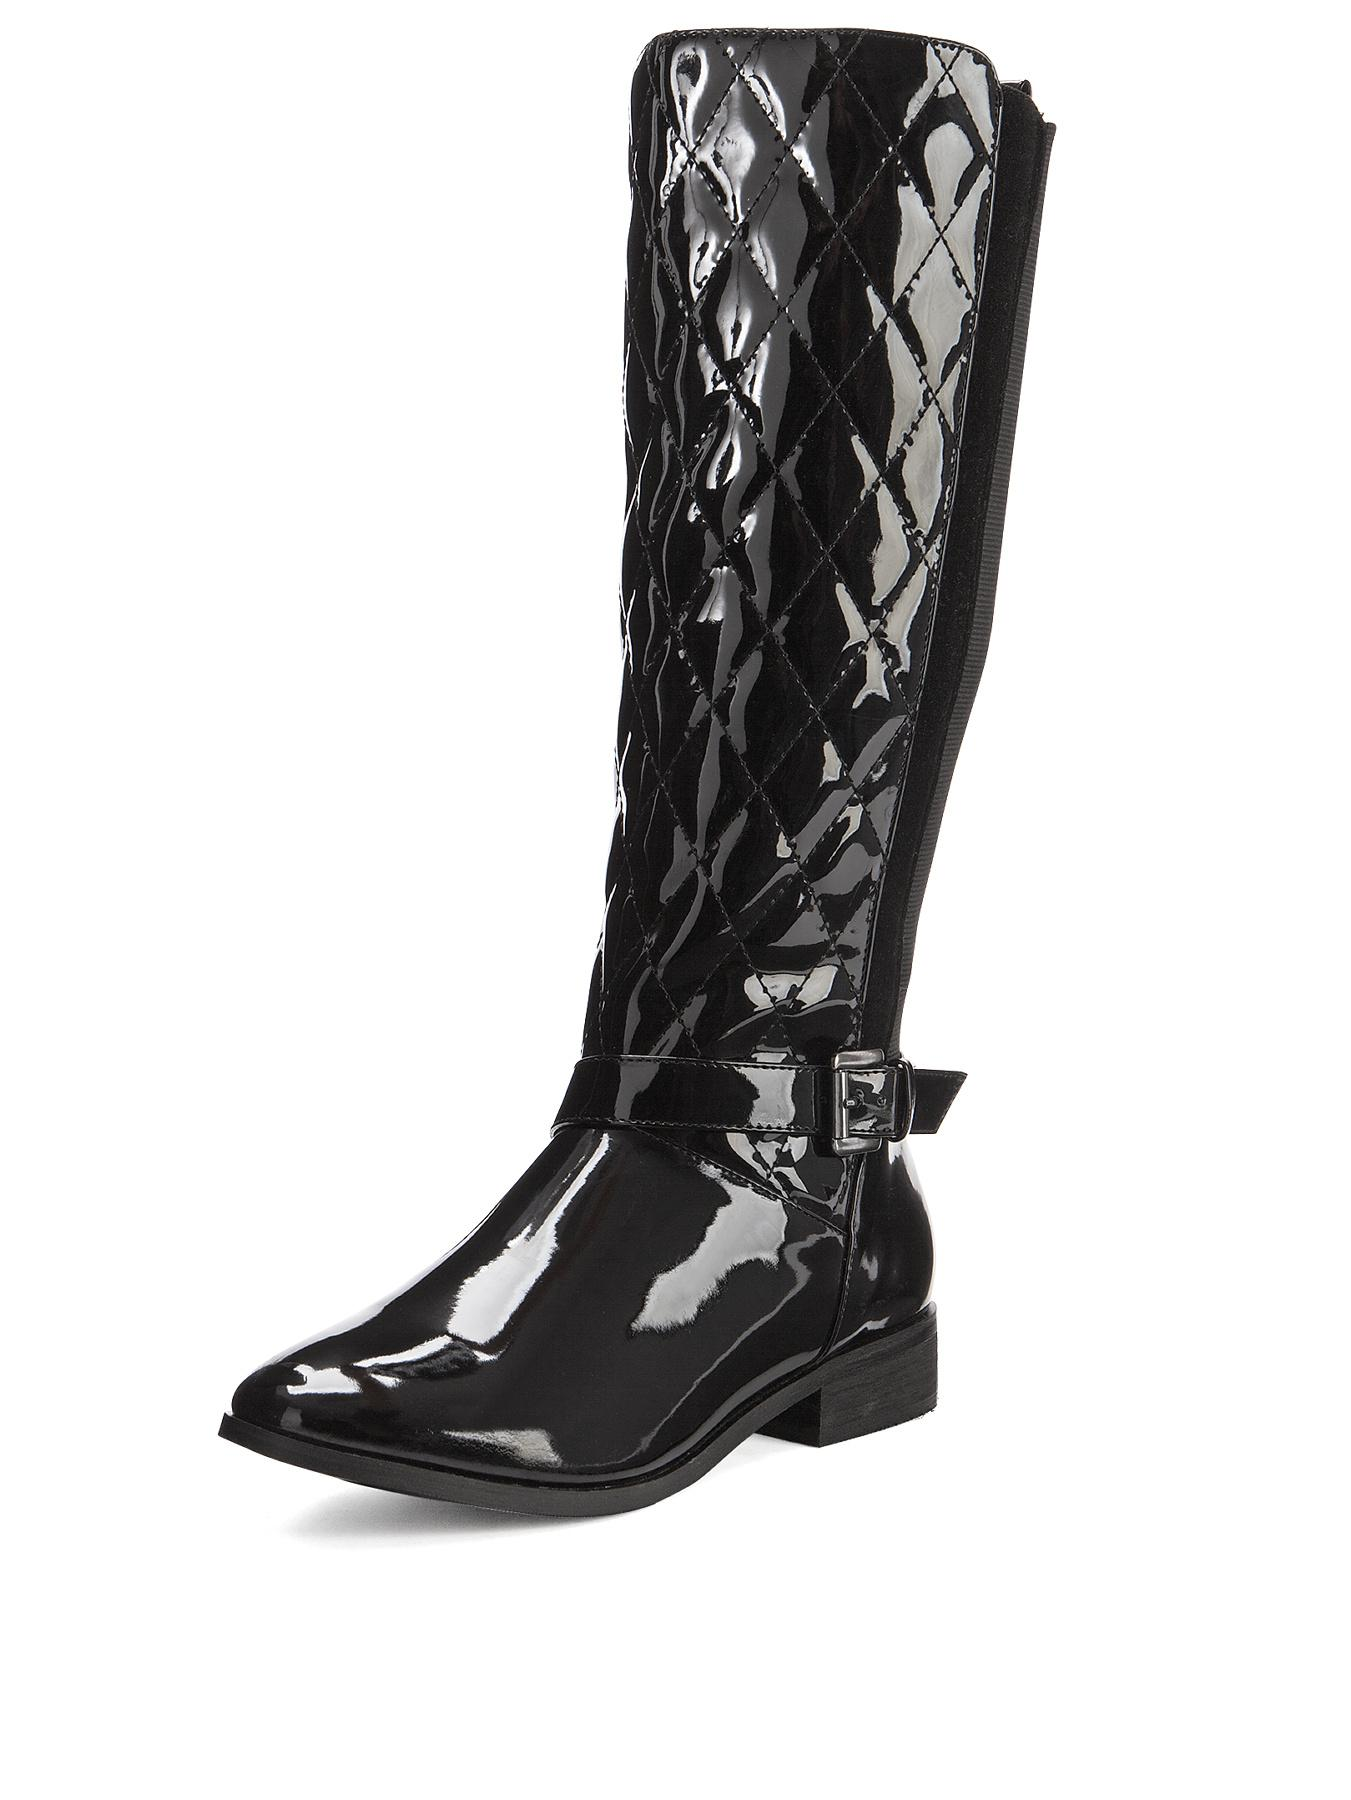 Shoe Box Caroline Quilted Patent Elastic Back Calf Boots